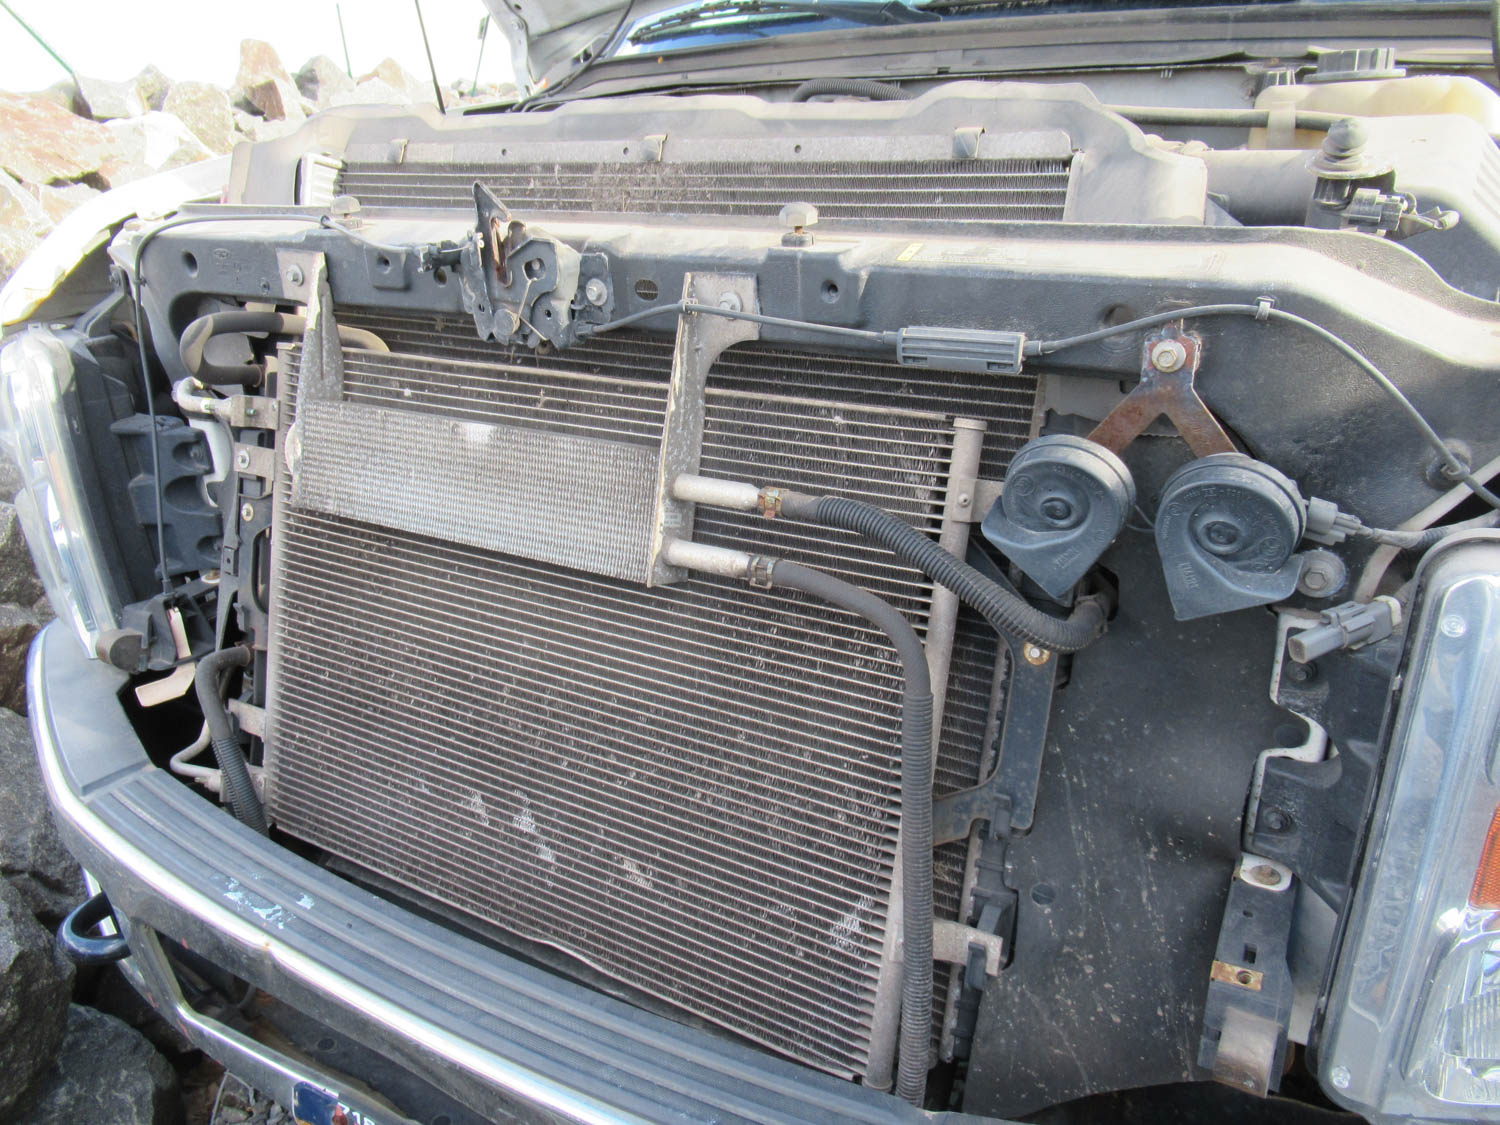 Lot 36 - 2009 FORD F-250 XL SUPER DUTY UTILITY TRUCK, 4-DOOR, 4-WHEEL DRIVE, CLOTH SEATS, APPROXIMATELY 116,